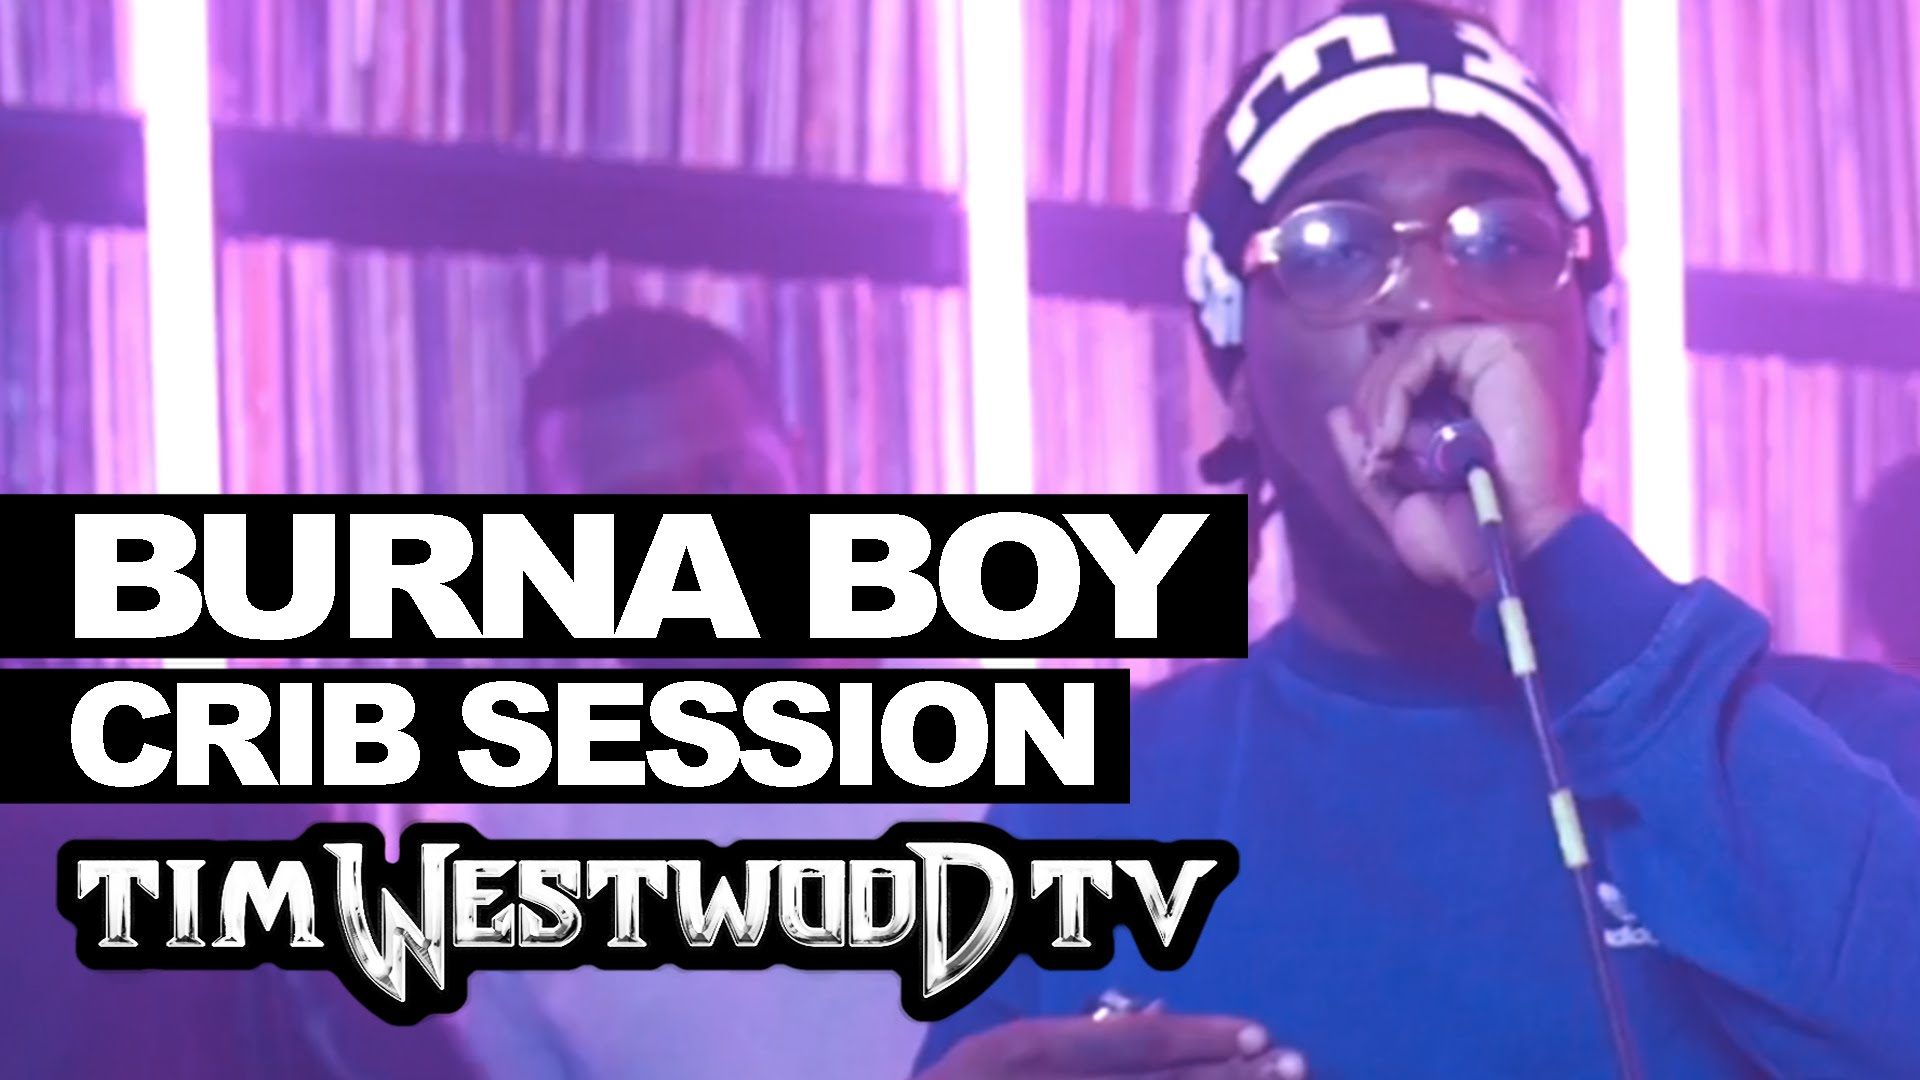 VIDEO: Burna Boy's 15 Minutes Freestyle @ Westwood Crib Session